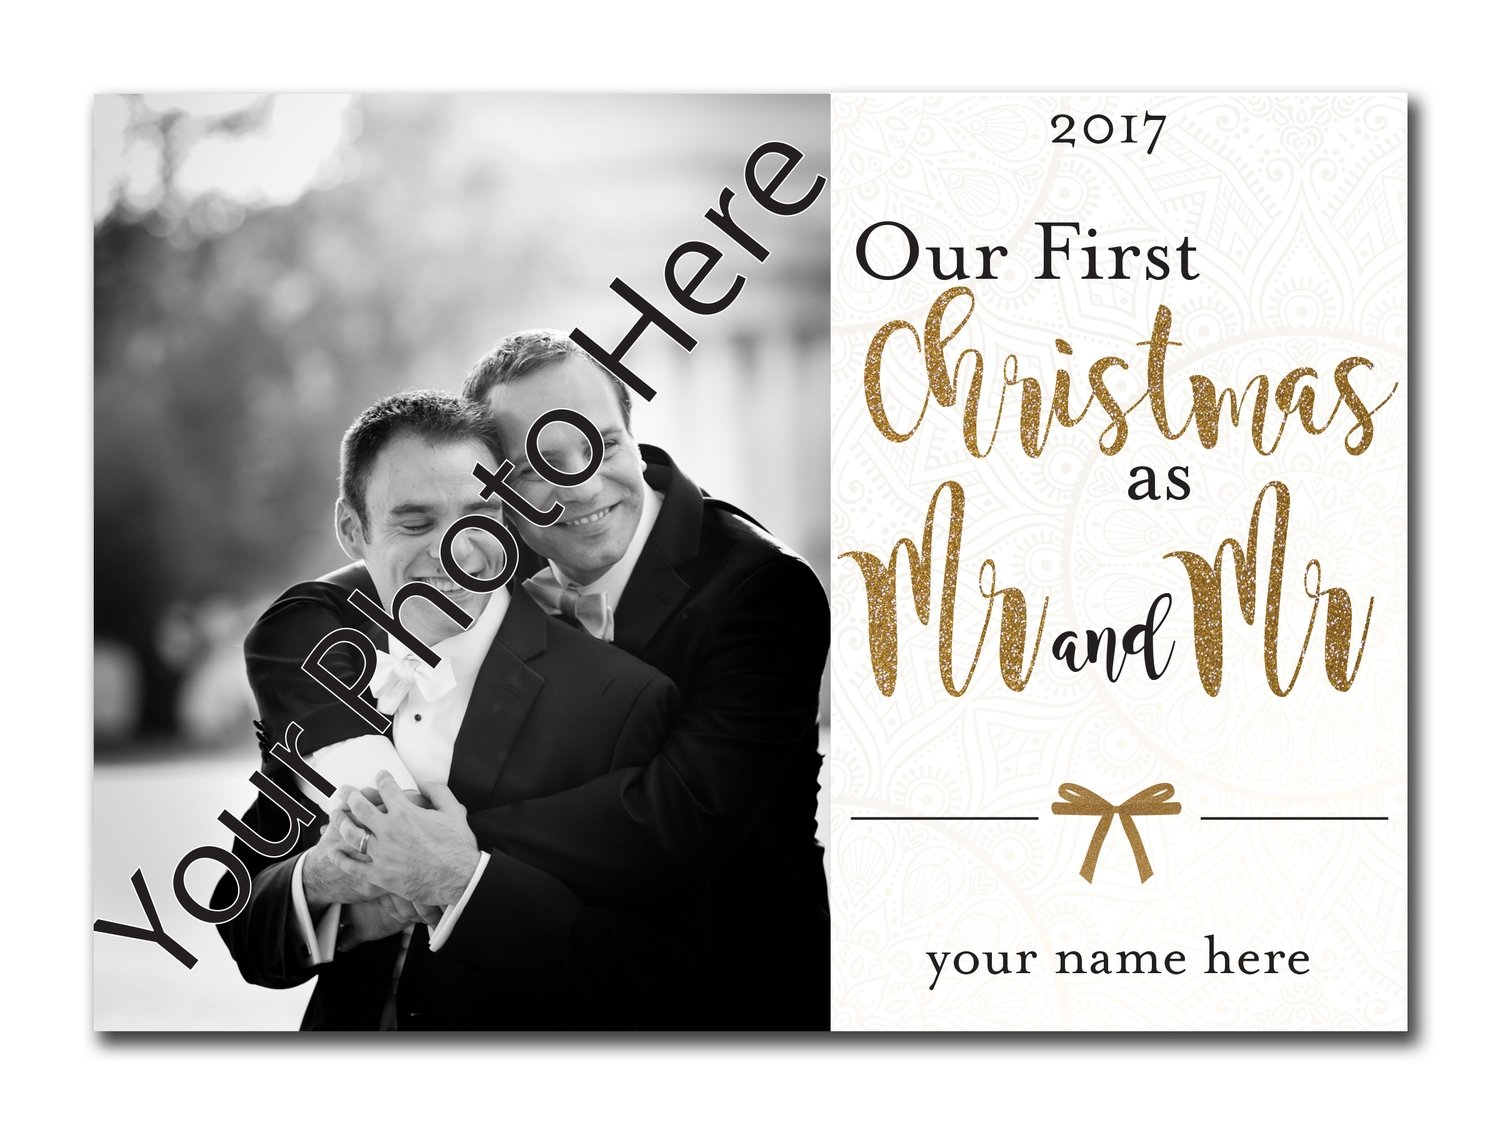 Our First Christmas as Mr. and Mr. 5x7